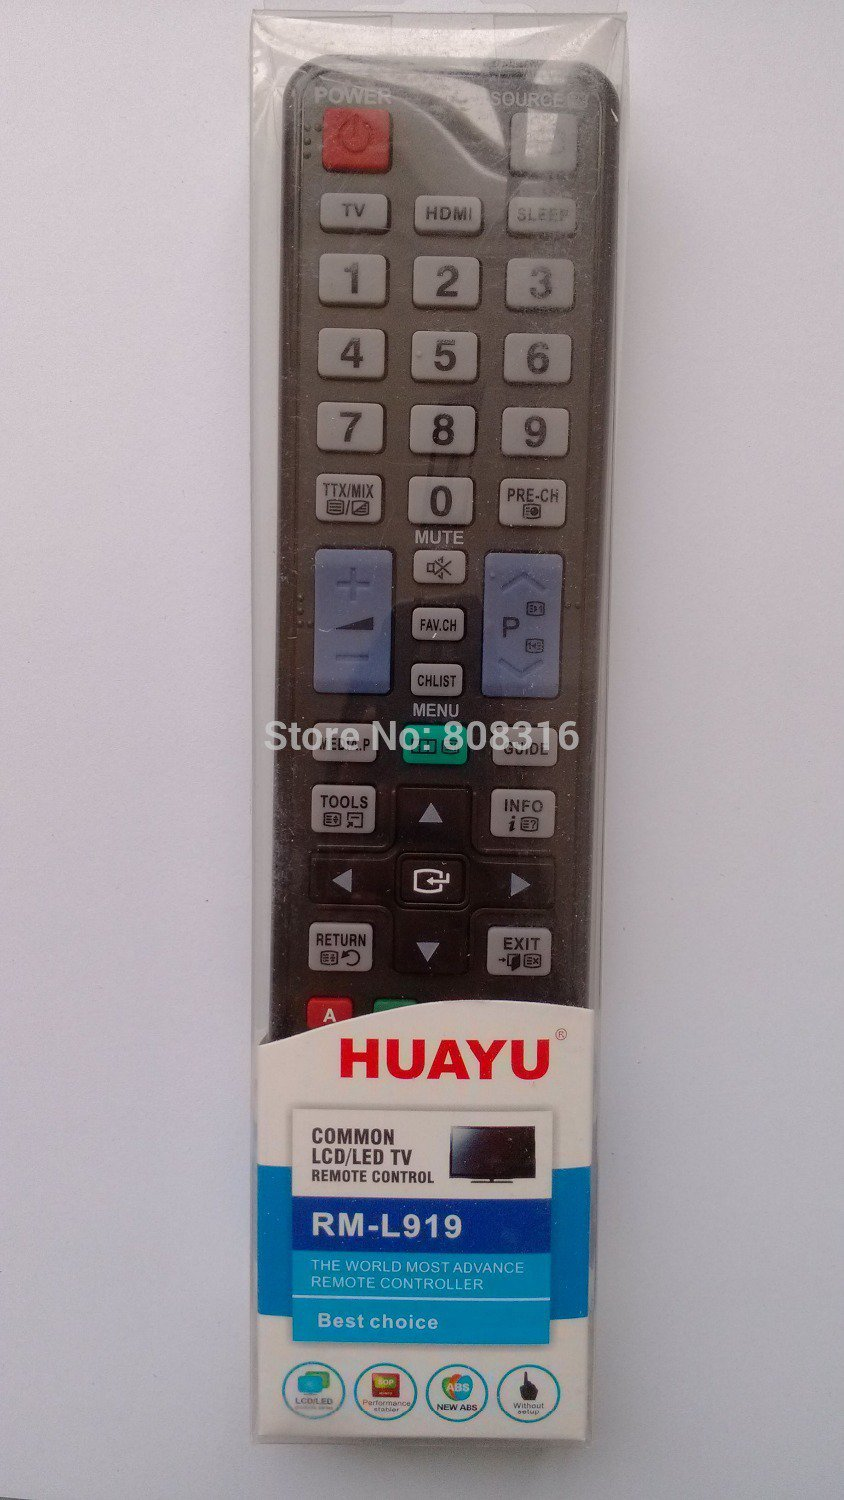 FOR SAMSUNG RM-L919 LCD LED TV REMOTE CONTROL